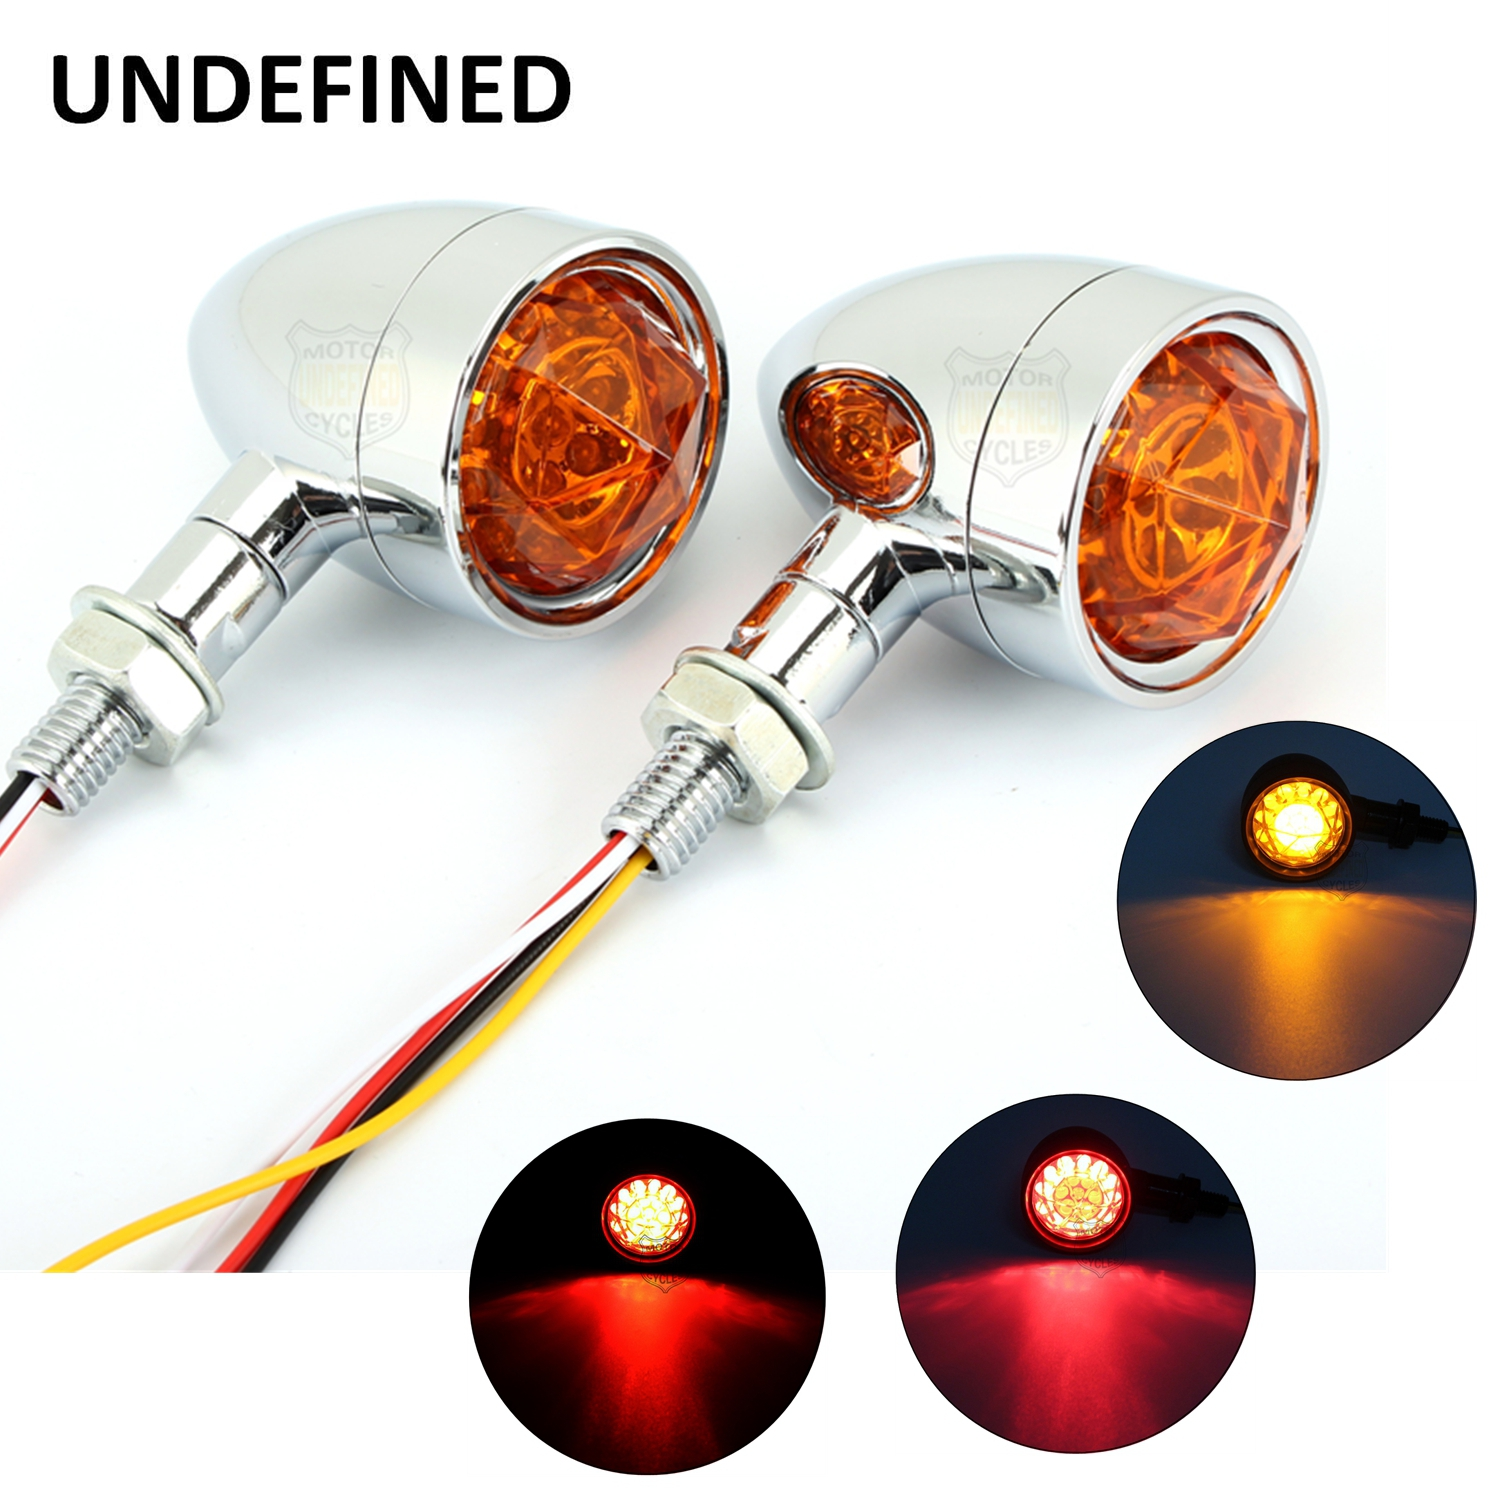 Chrome Motorcycle Turn Signal Bullet Lights Amber Diamond Lens LED Brake Indicator Light Lamp For Harley Bobber Bikes Universal